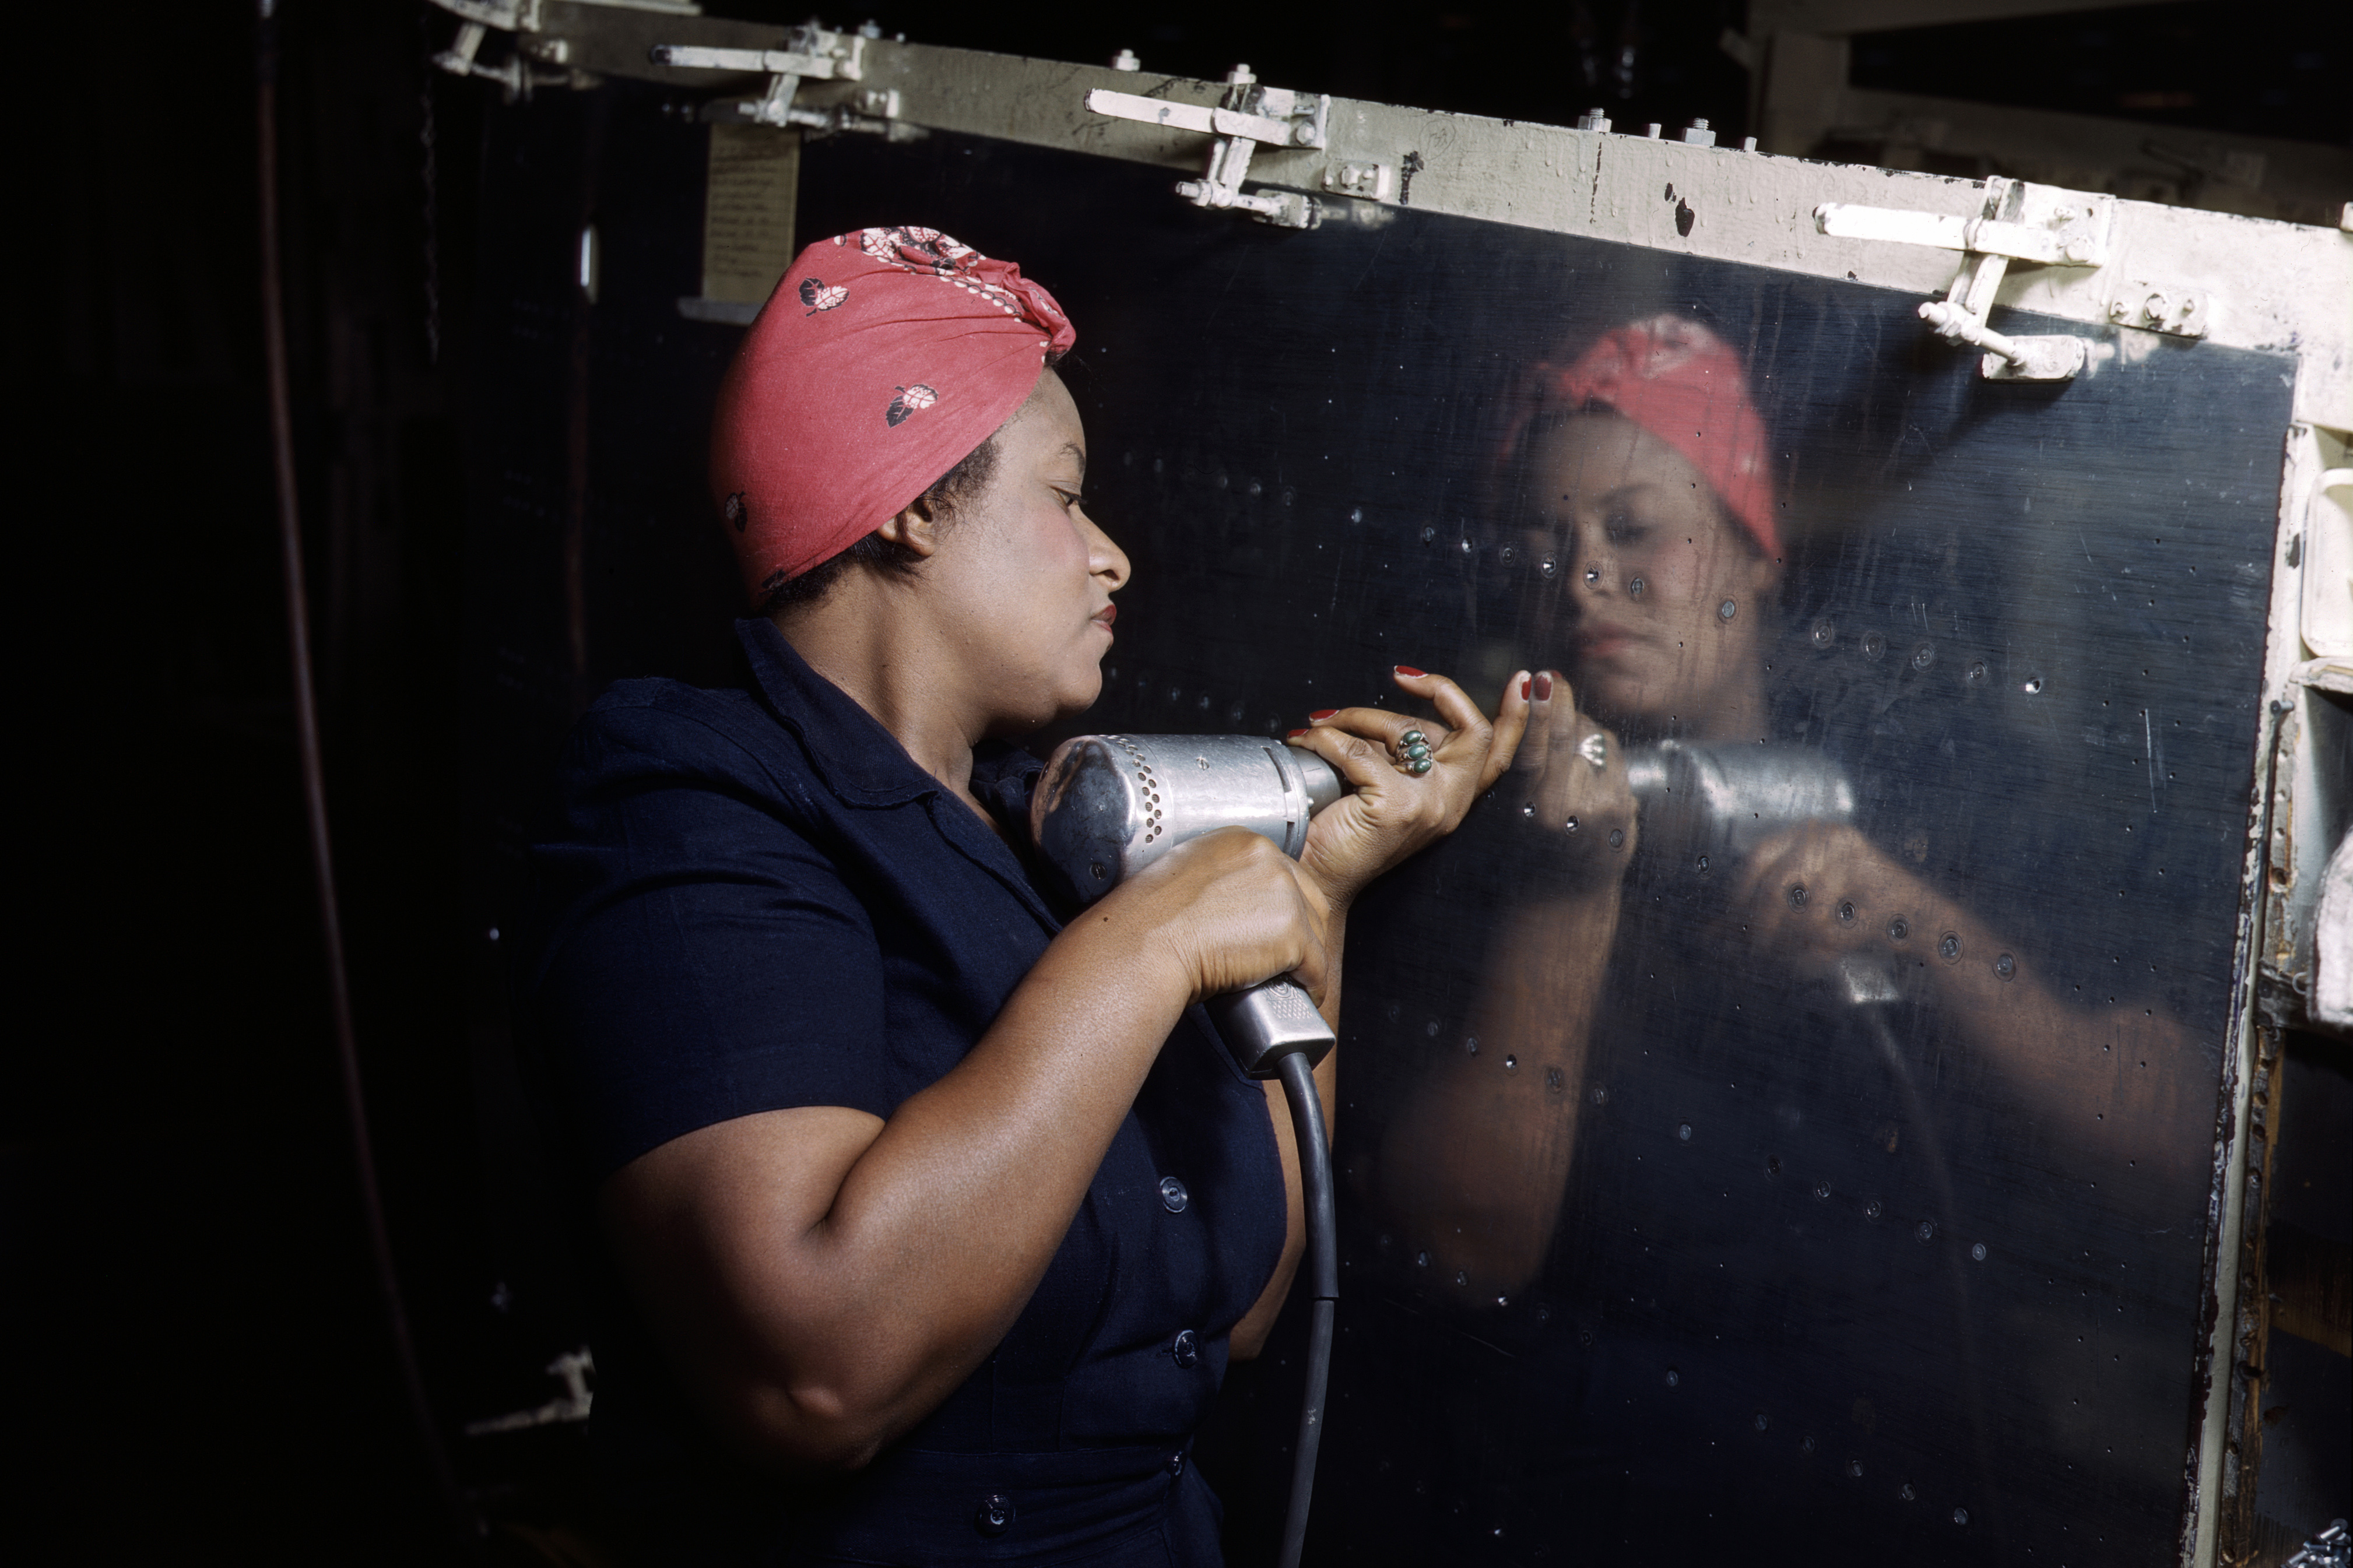 """A real-life """"Rosie the Riveter"""" operating a hand drill at Vultee-Nashville, Tennessee, working on an A-31 Vengeance dive bomber."""